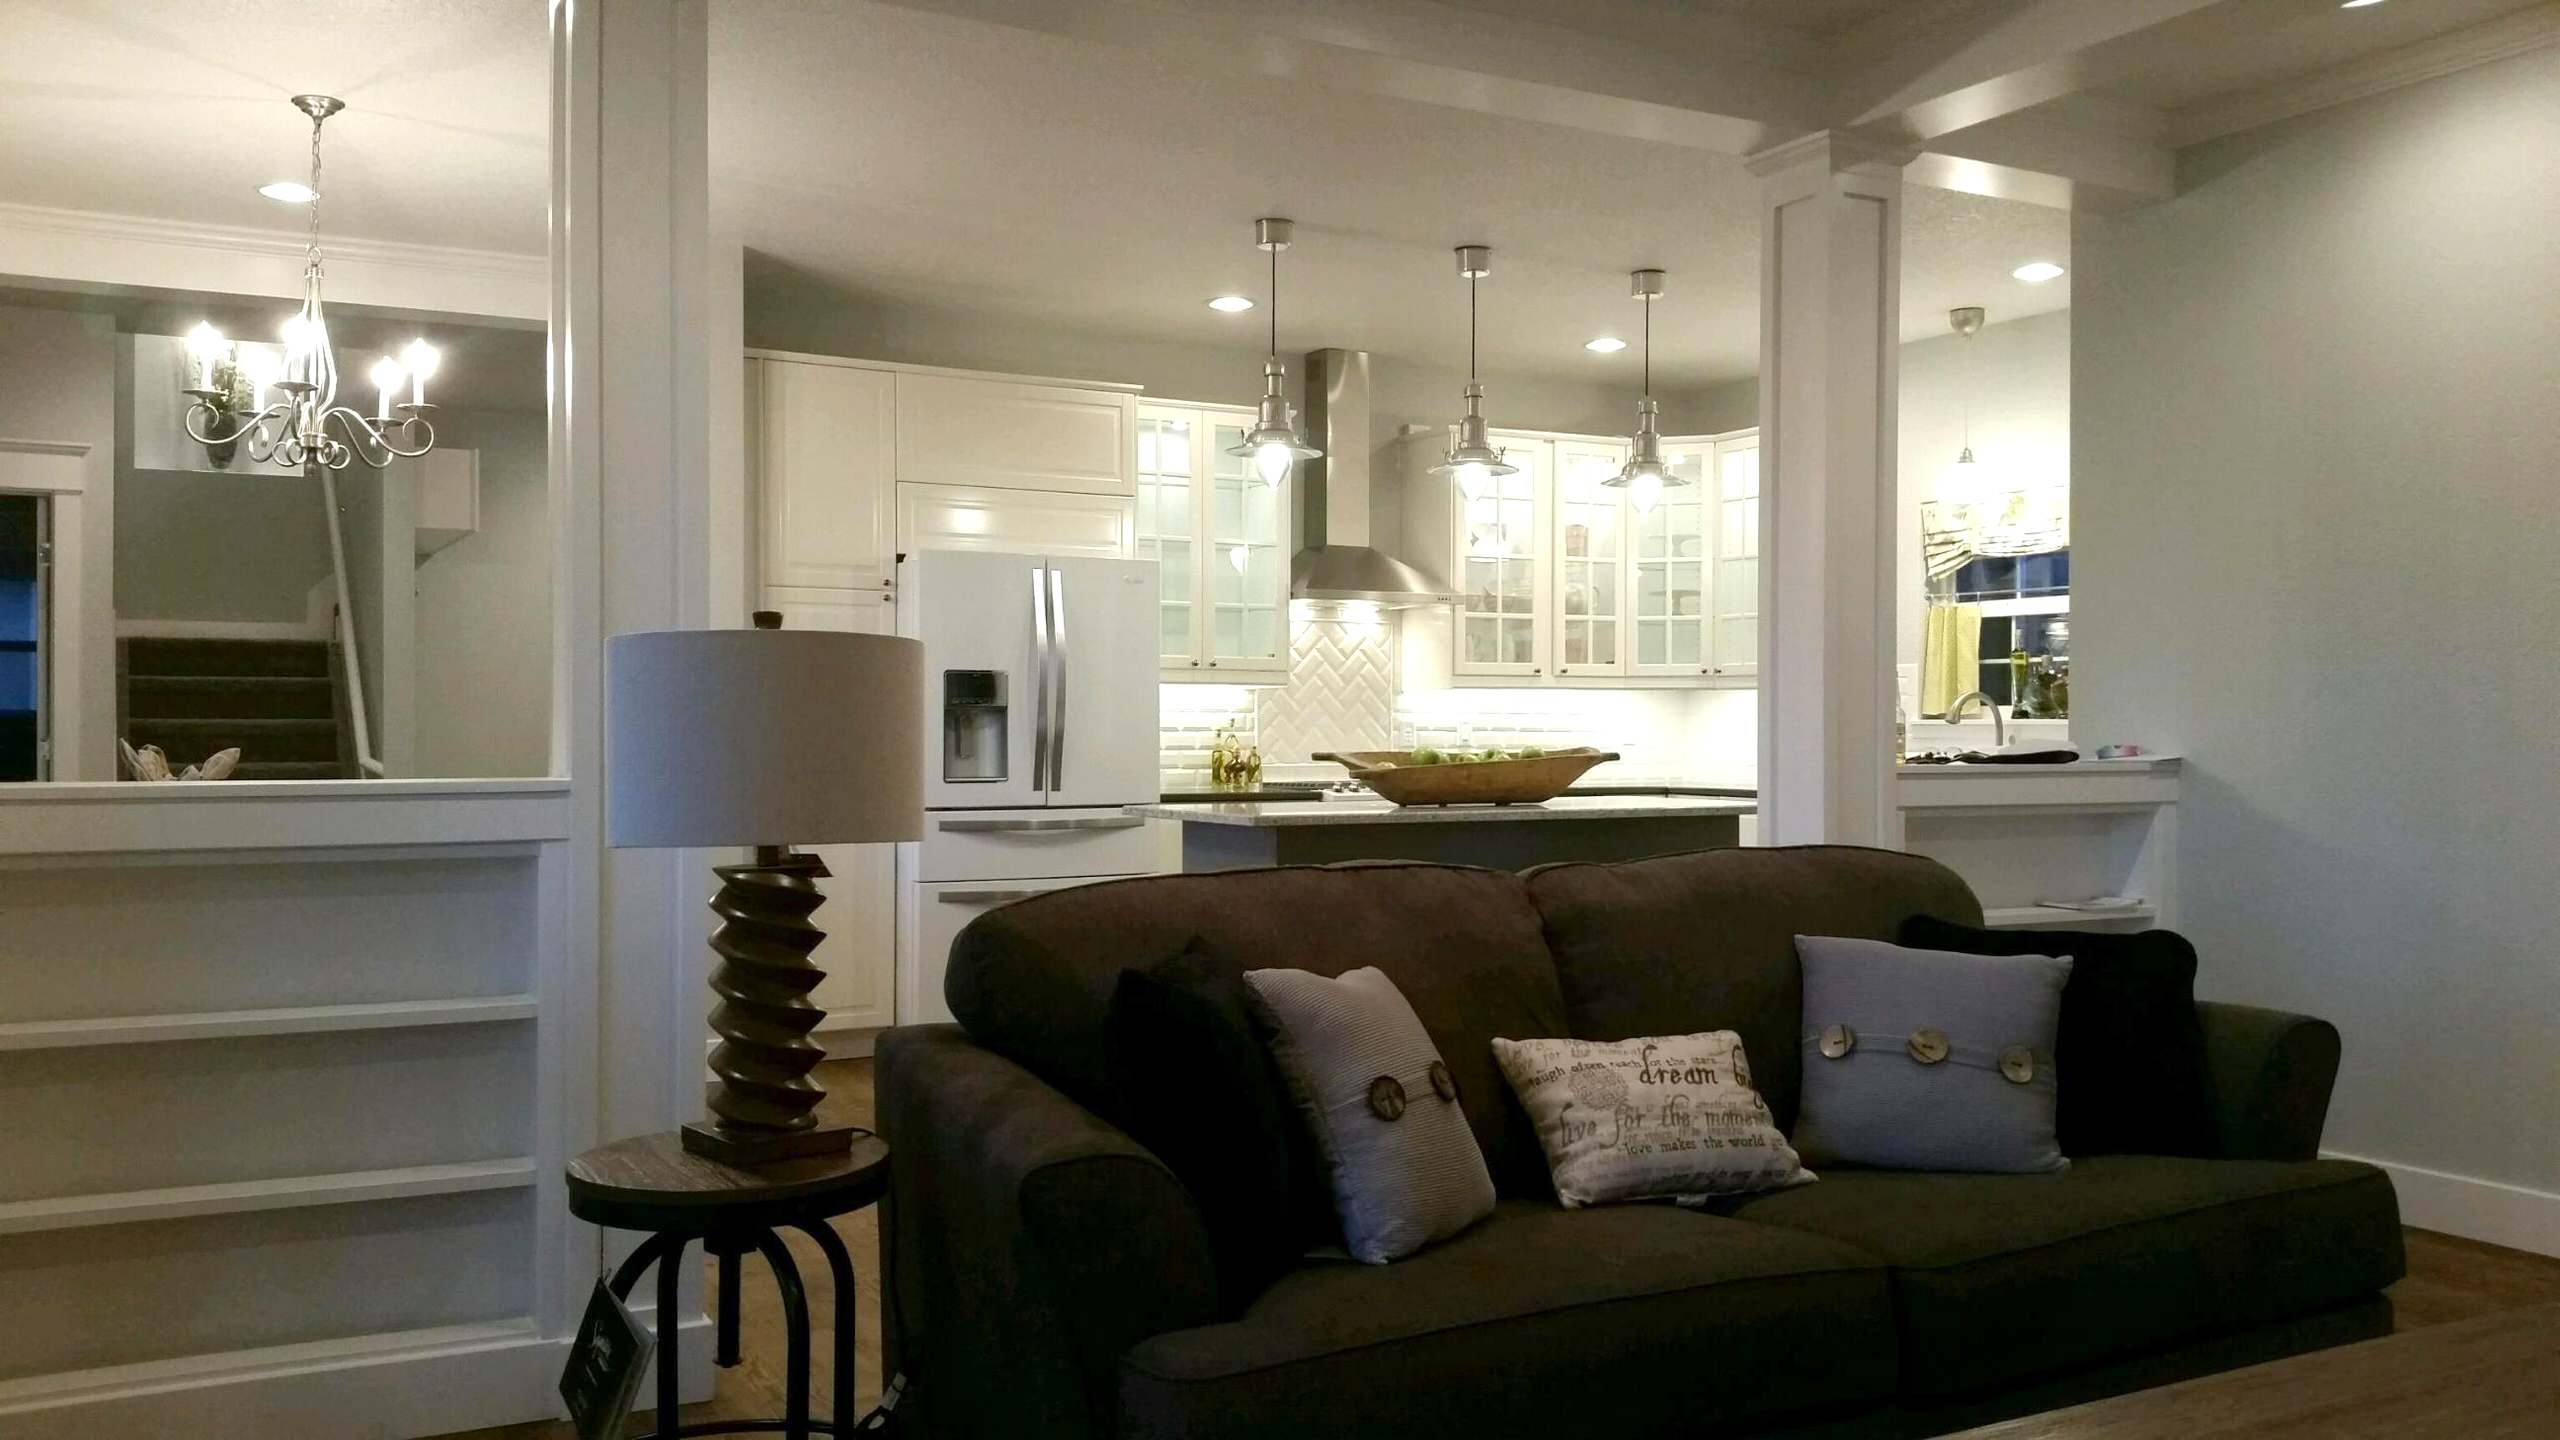 1.   2015 Parade of Homes Entry